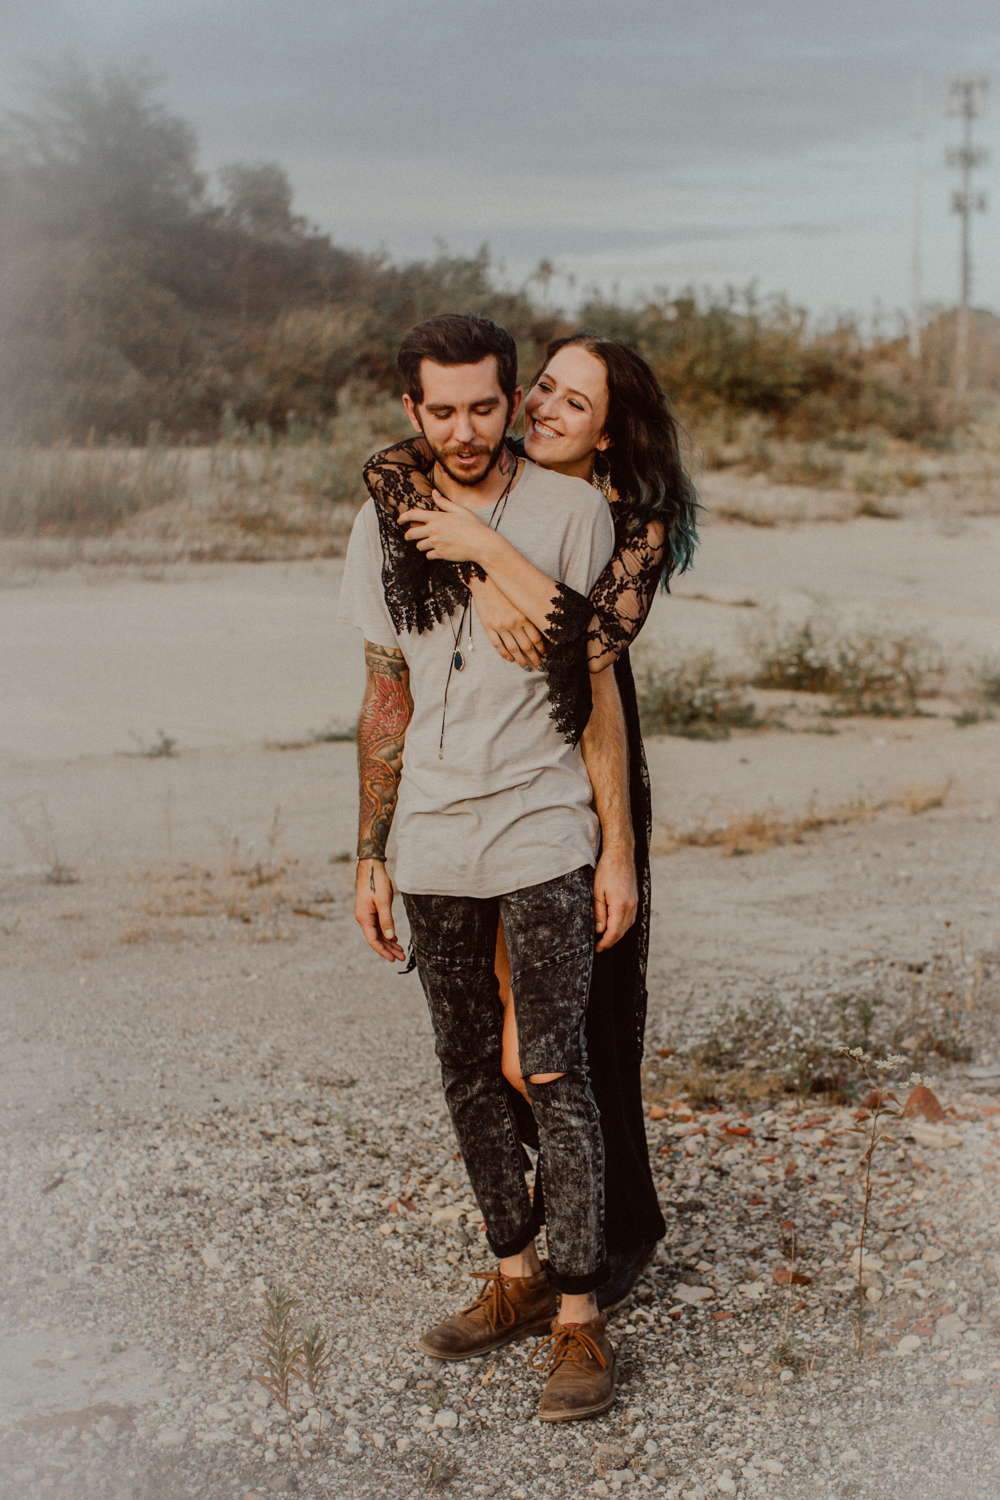 Midwest Desert_Indianapolis-Fashion-Engagement_Copperhead Photography_web (86 of 111).jpg